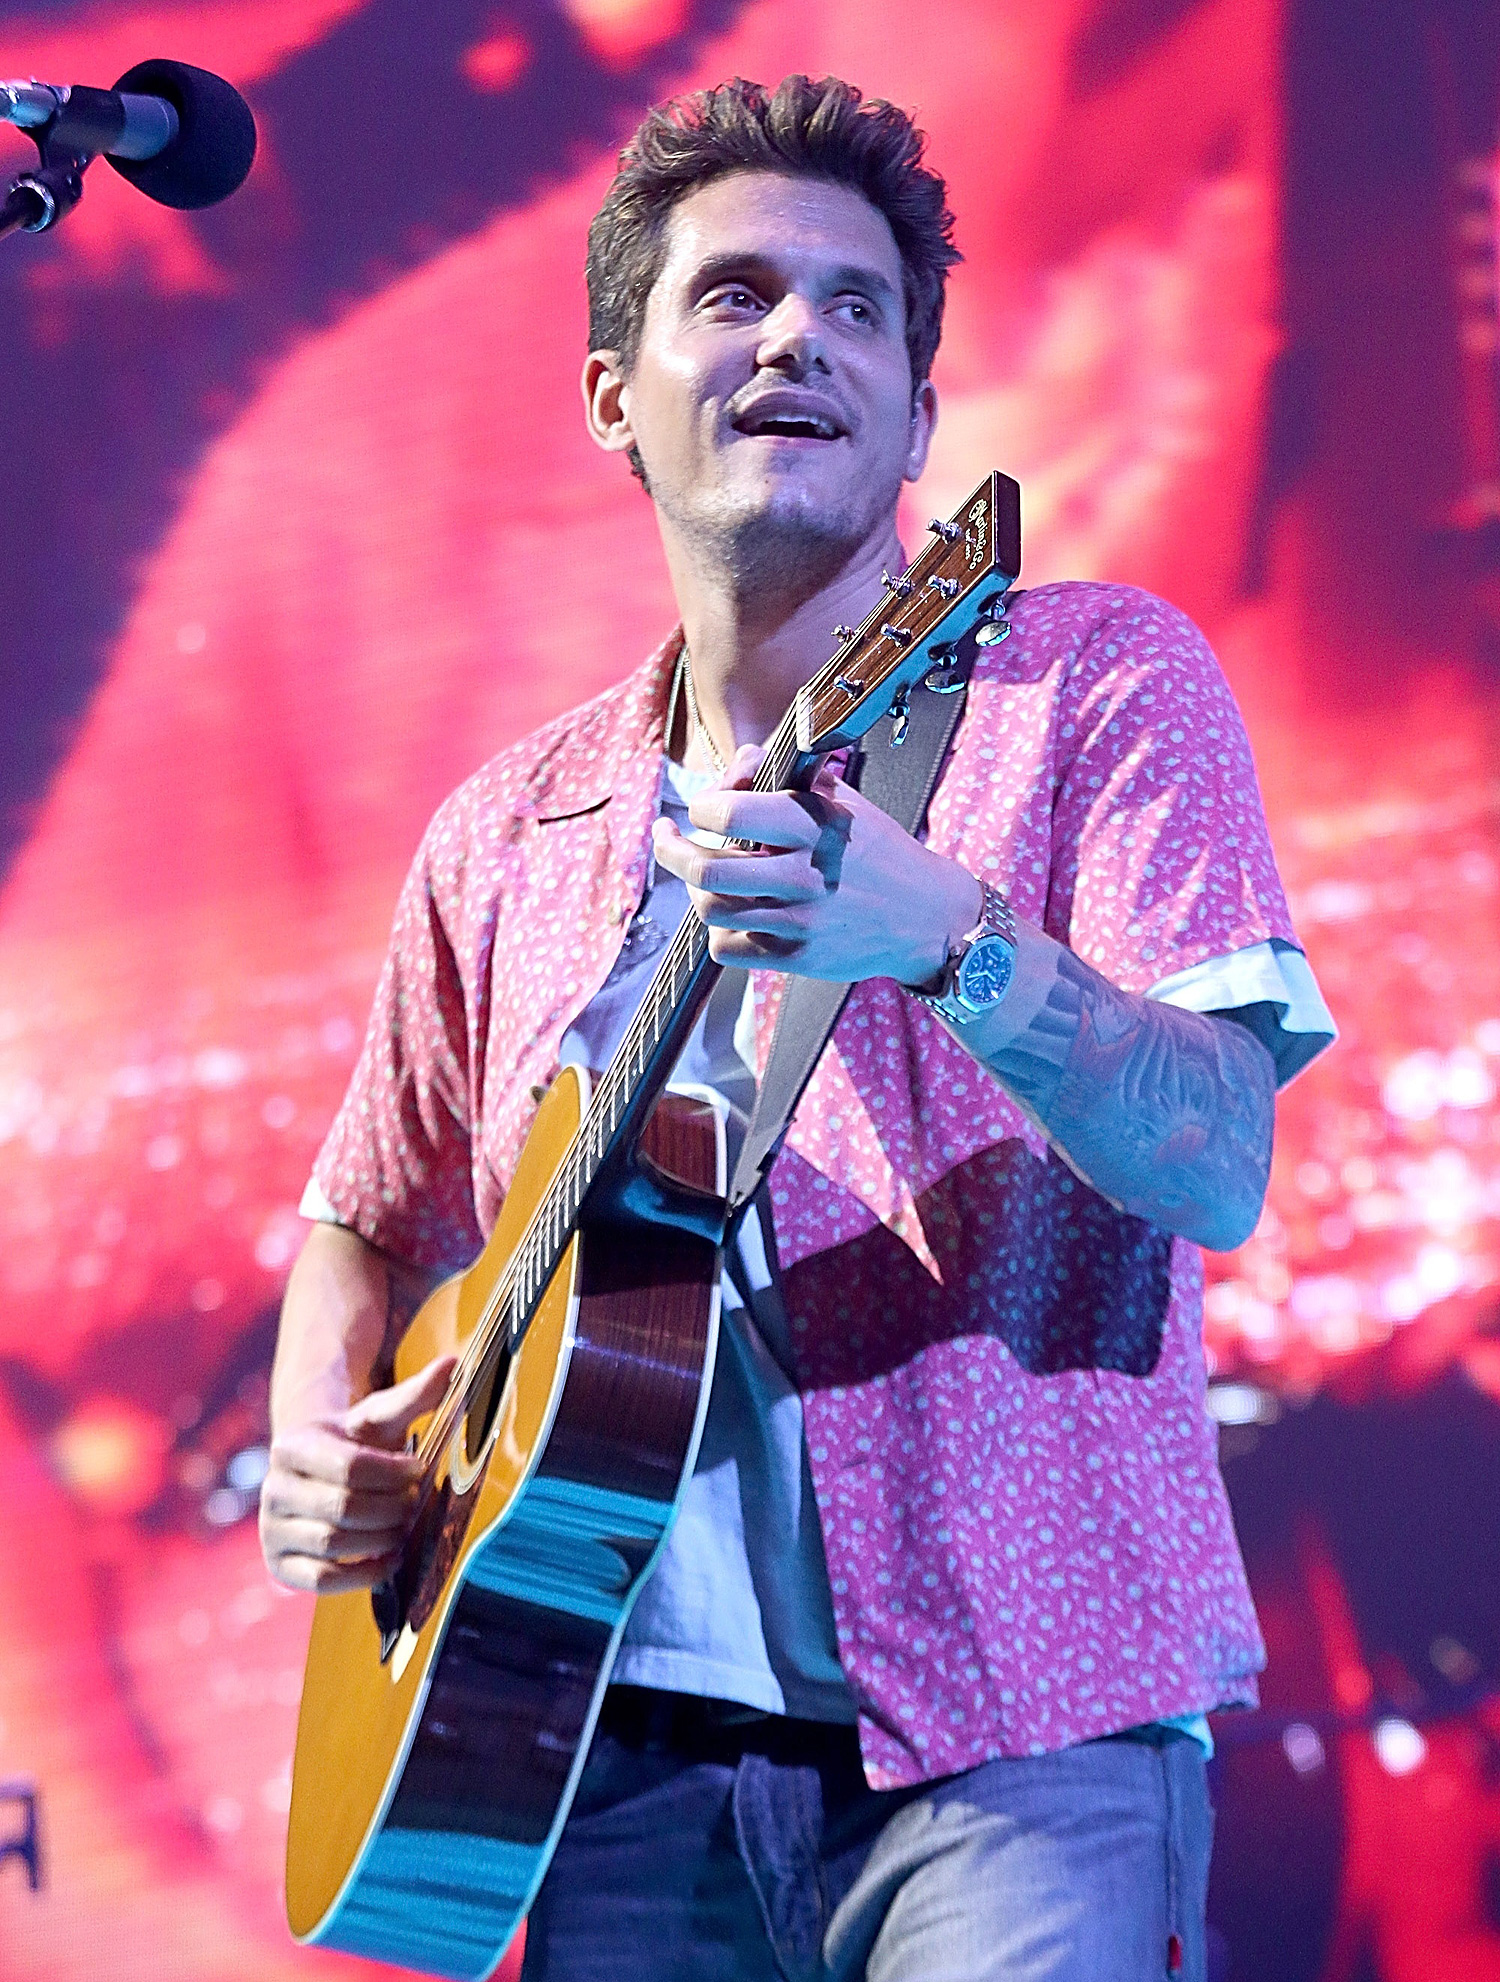 John Mayer Performs In Concert - San Antonio, TX